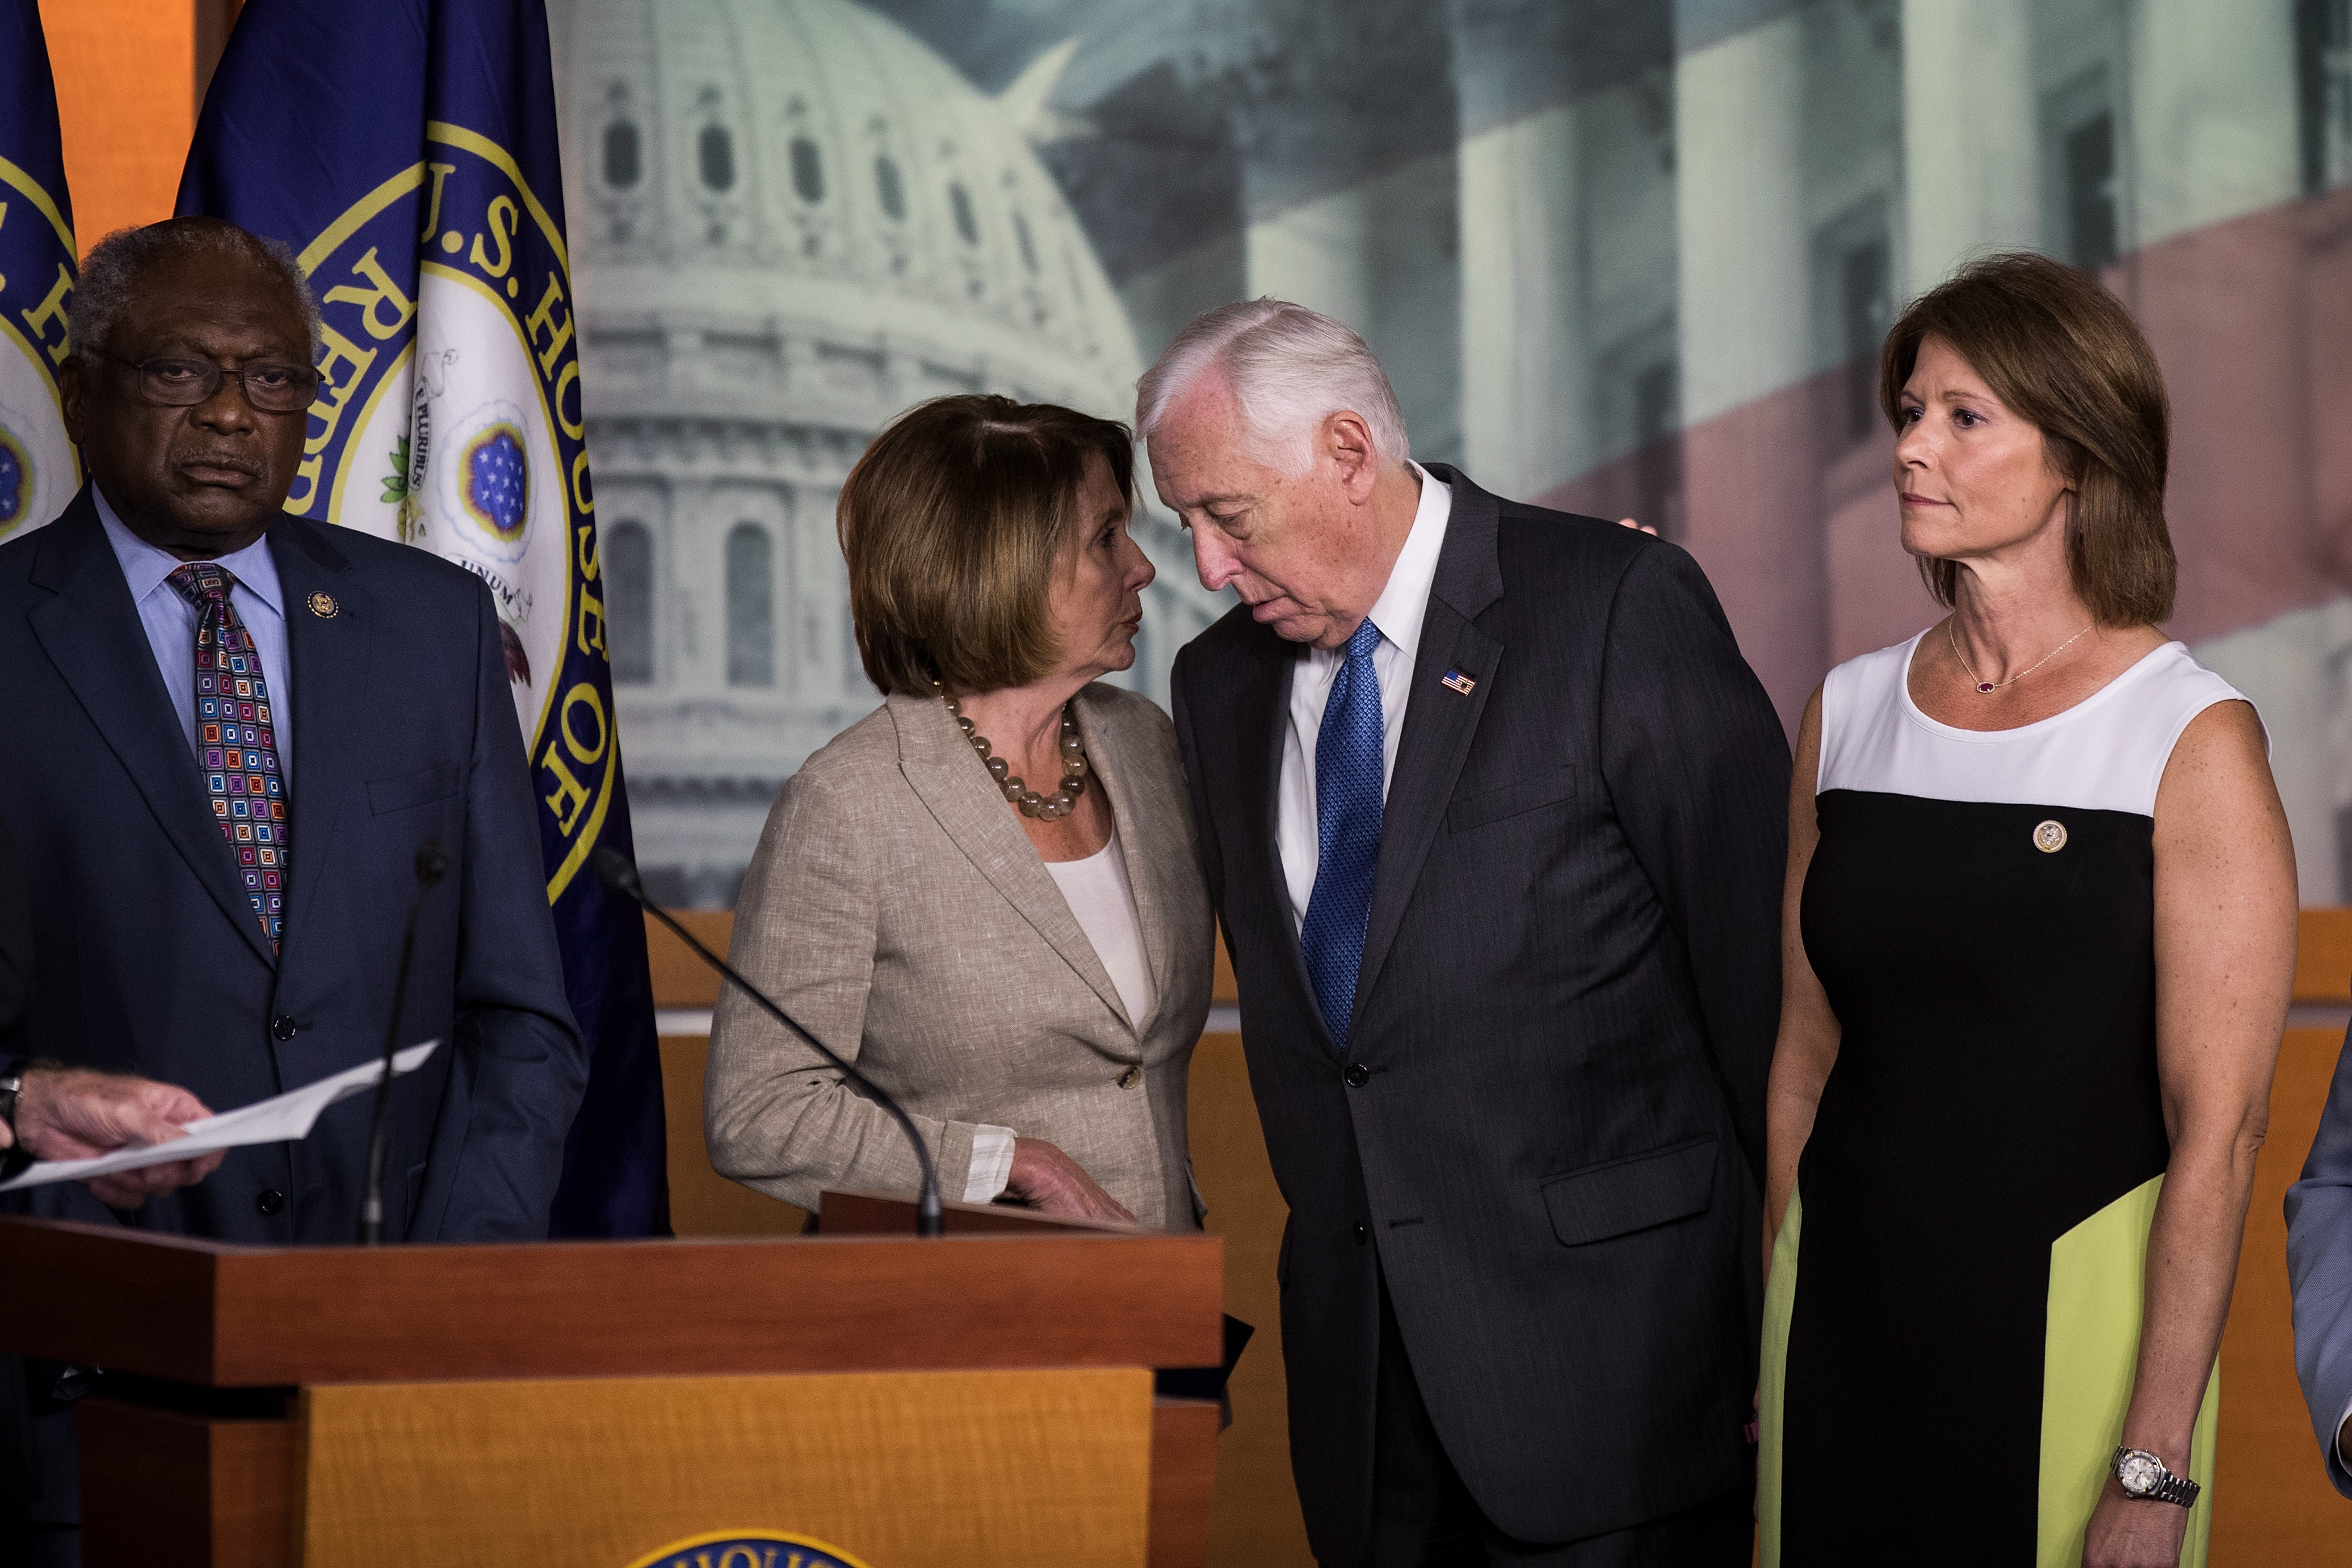 (L to R) Rep. James Clyburn, House Minority Leader Nancy Pelosi, Rep. Steny Hoyer and Rep. Cheri Bustos attend a press conference regarding the Senate's defeat of the GOP health care plan, on Capitol Hill, July 28, 2017 in Washington, DC. (Photo by Drew Angerer/Getty Images)